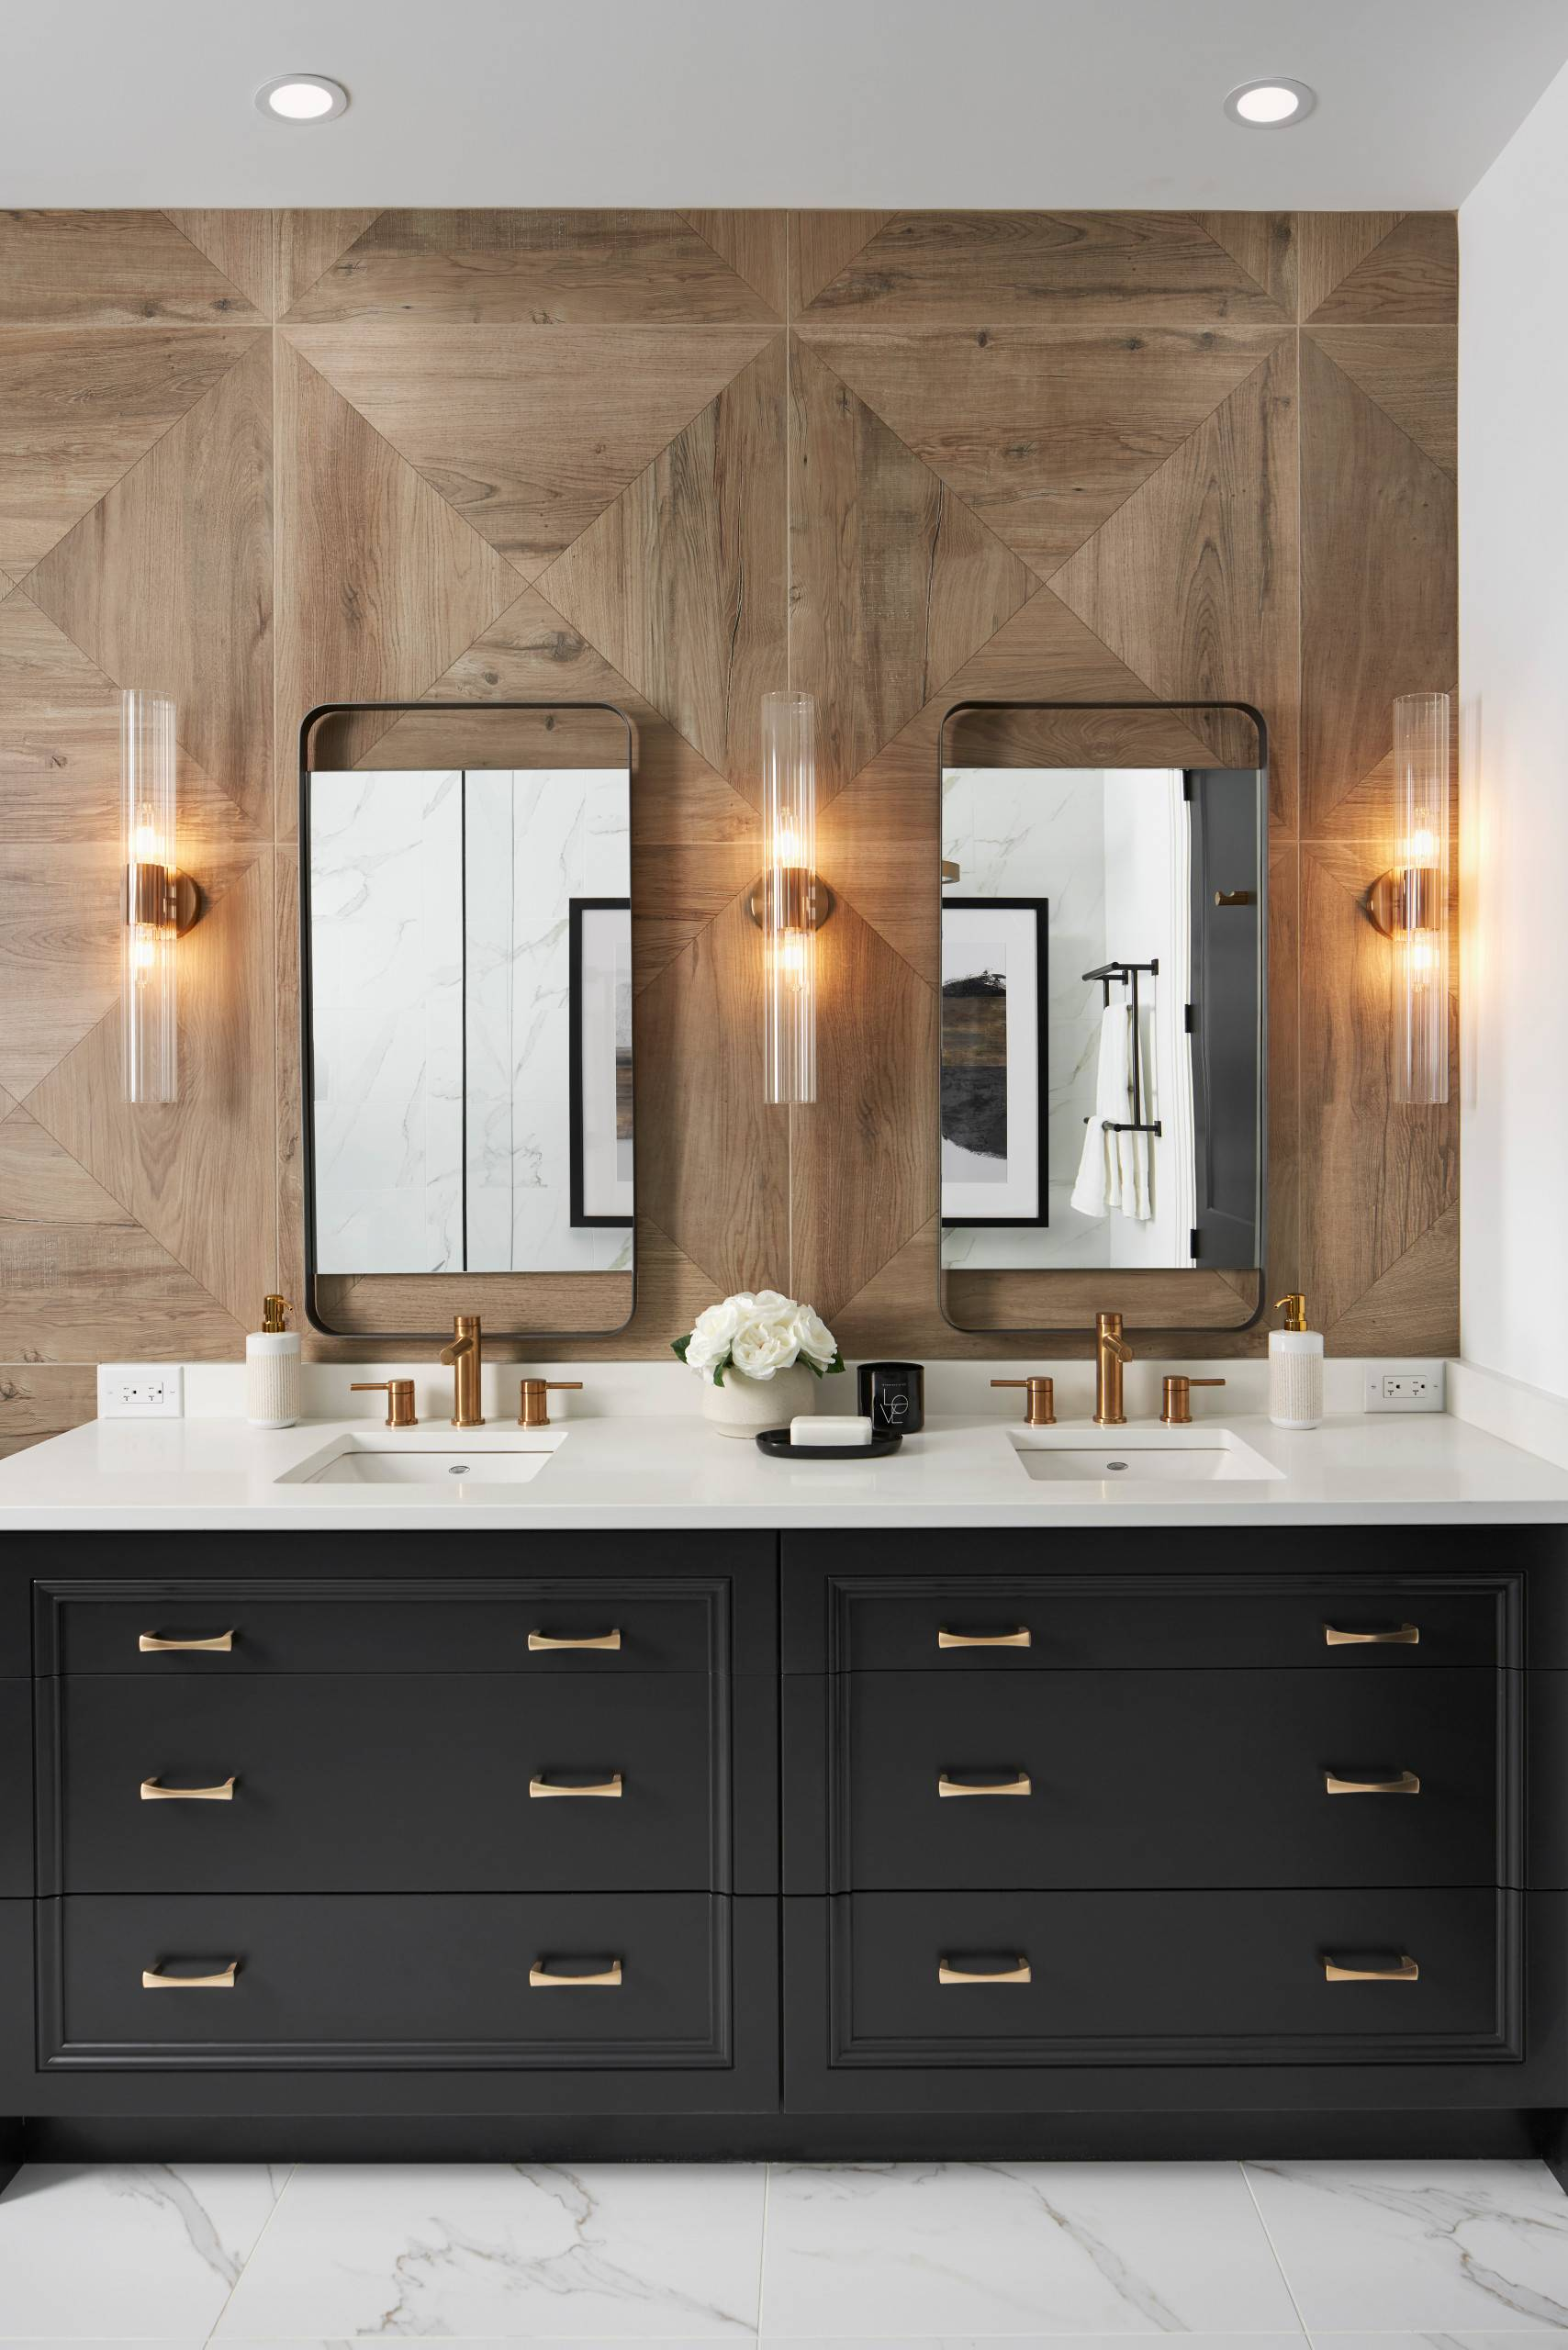 Warm Colored Wood Tile Bathroom With Special Lighting.